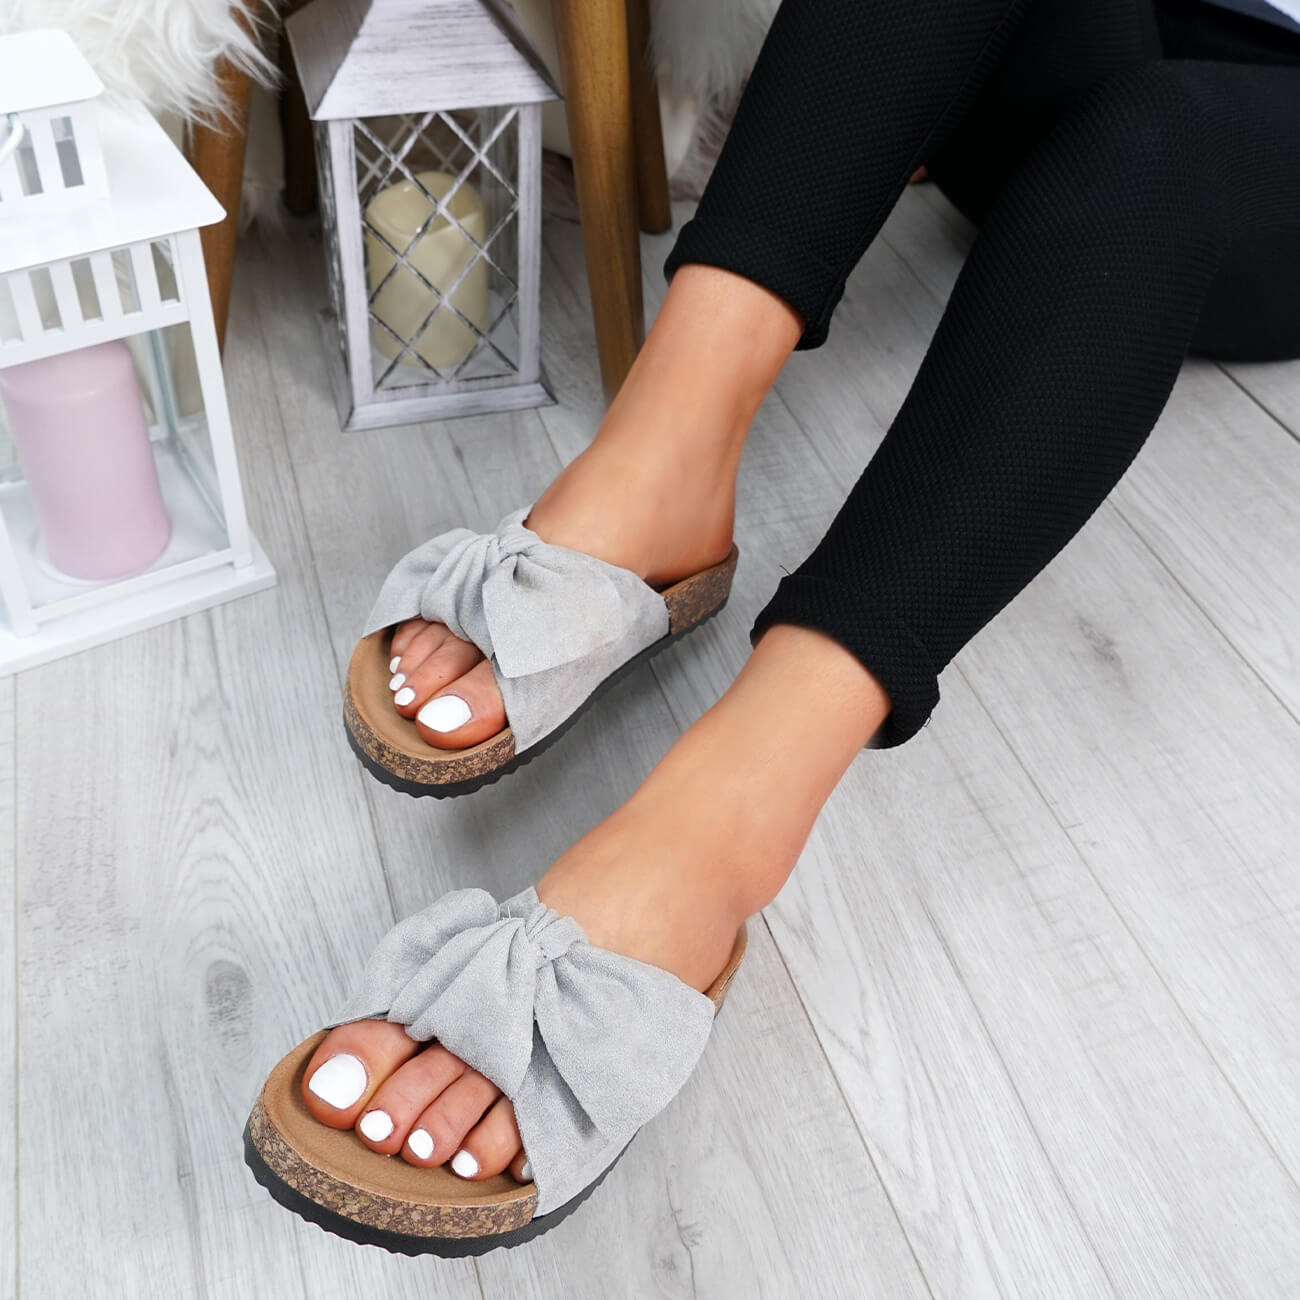 WOMENS-LADIES-SLIP-ON-FLAT-SANDALS-BOW-SLIDERS-SUMMER-CASUAL-SHOES-SIZE thumbnail 27